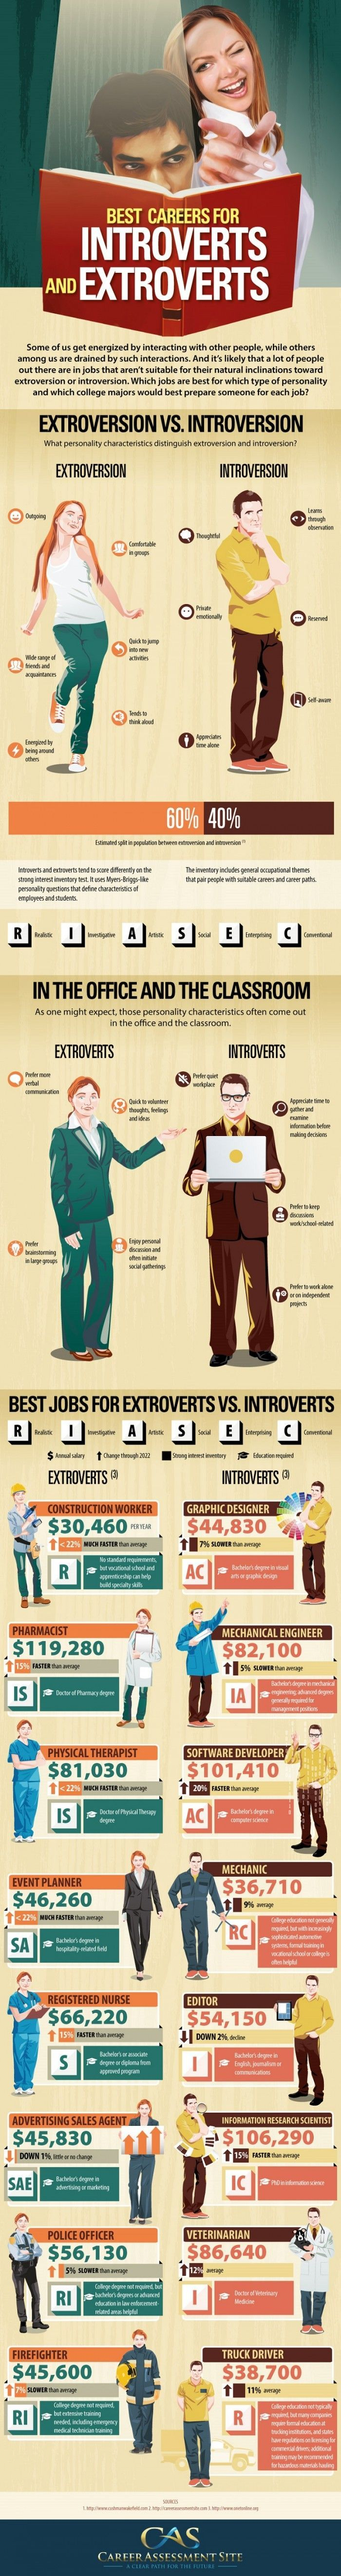 Career Test Free Enchanting The Best Careers For Introverts And Extroverts Infographic .